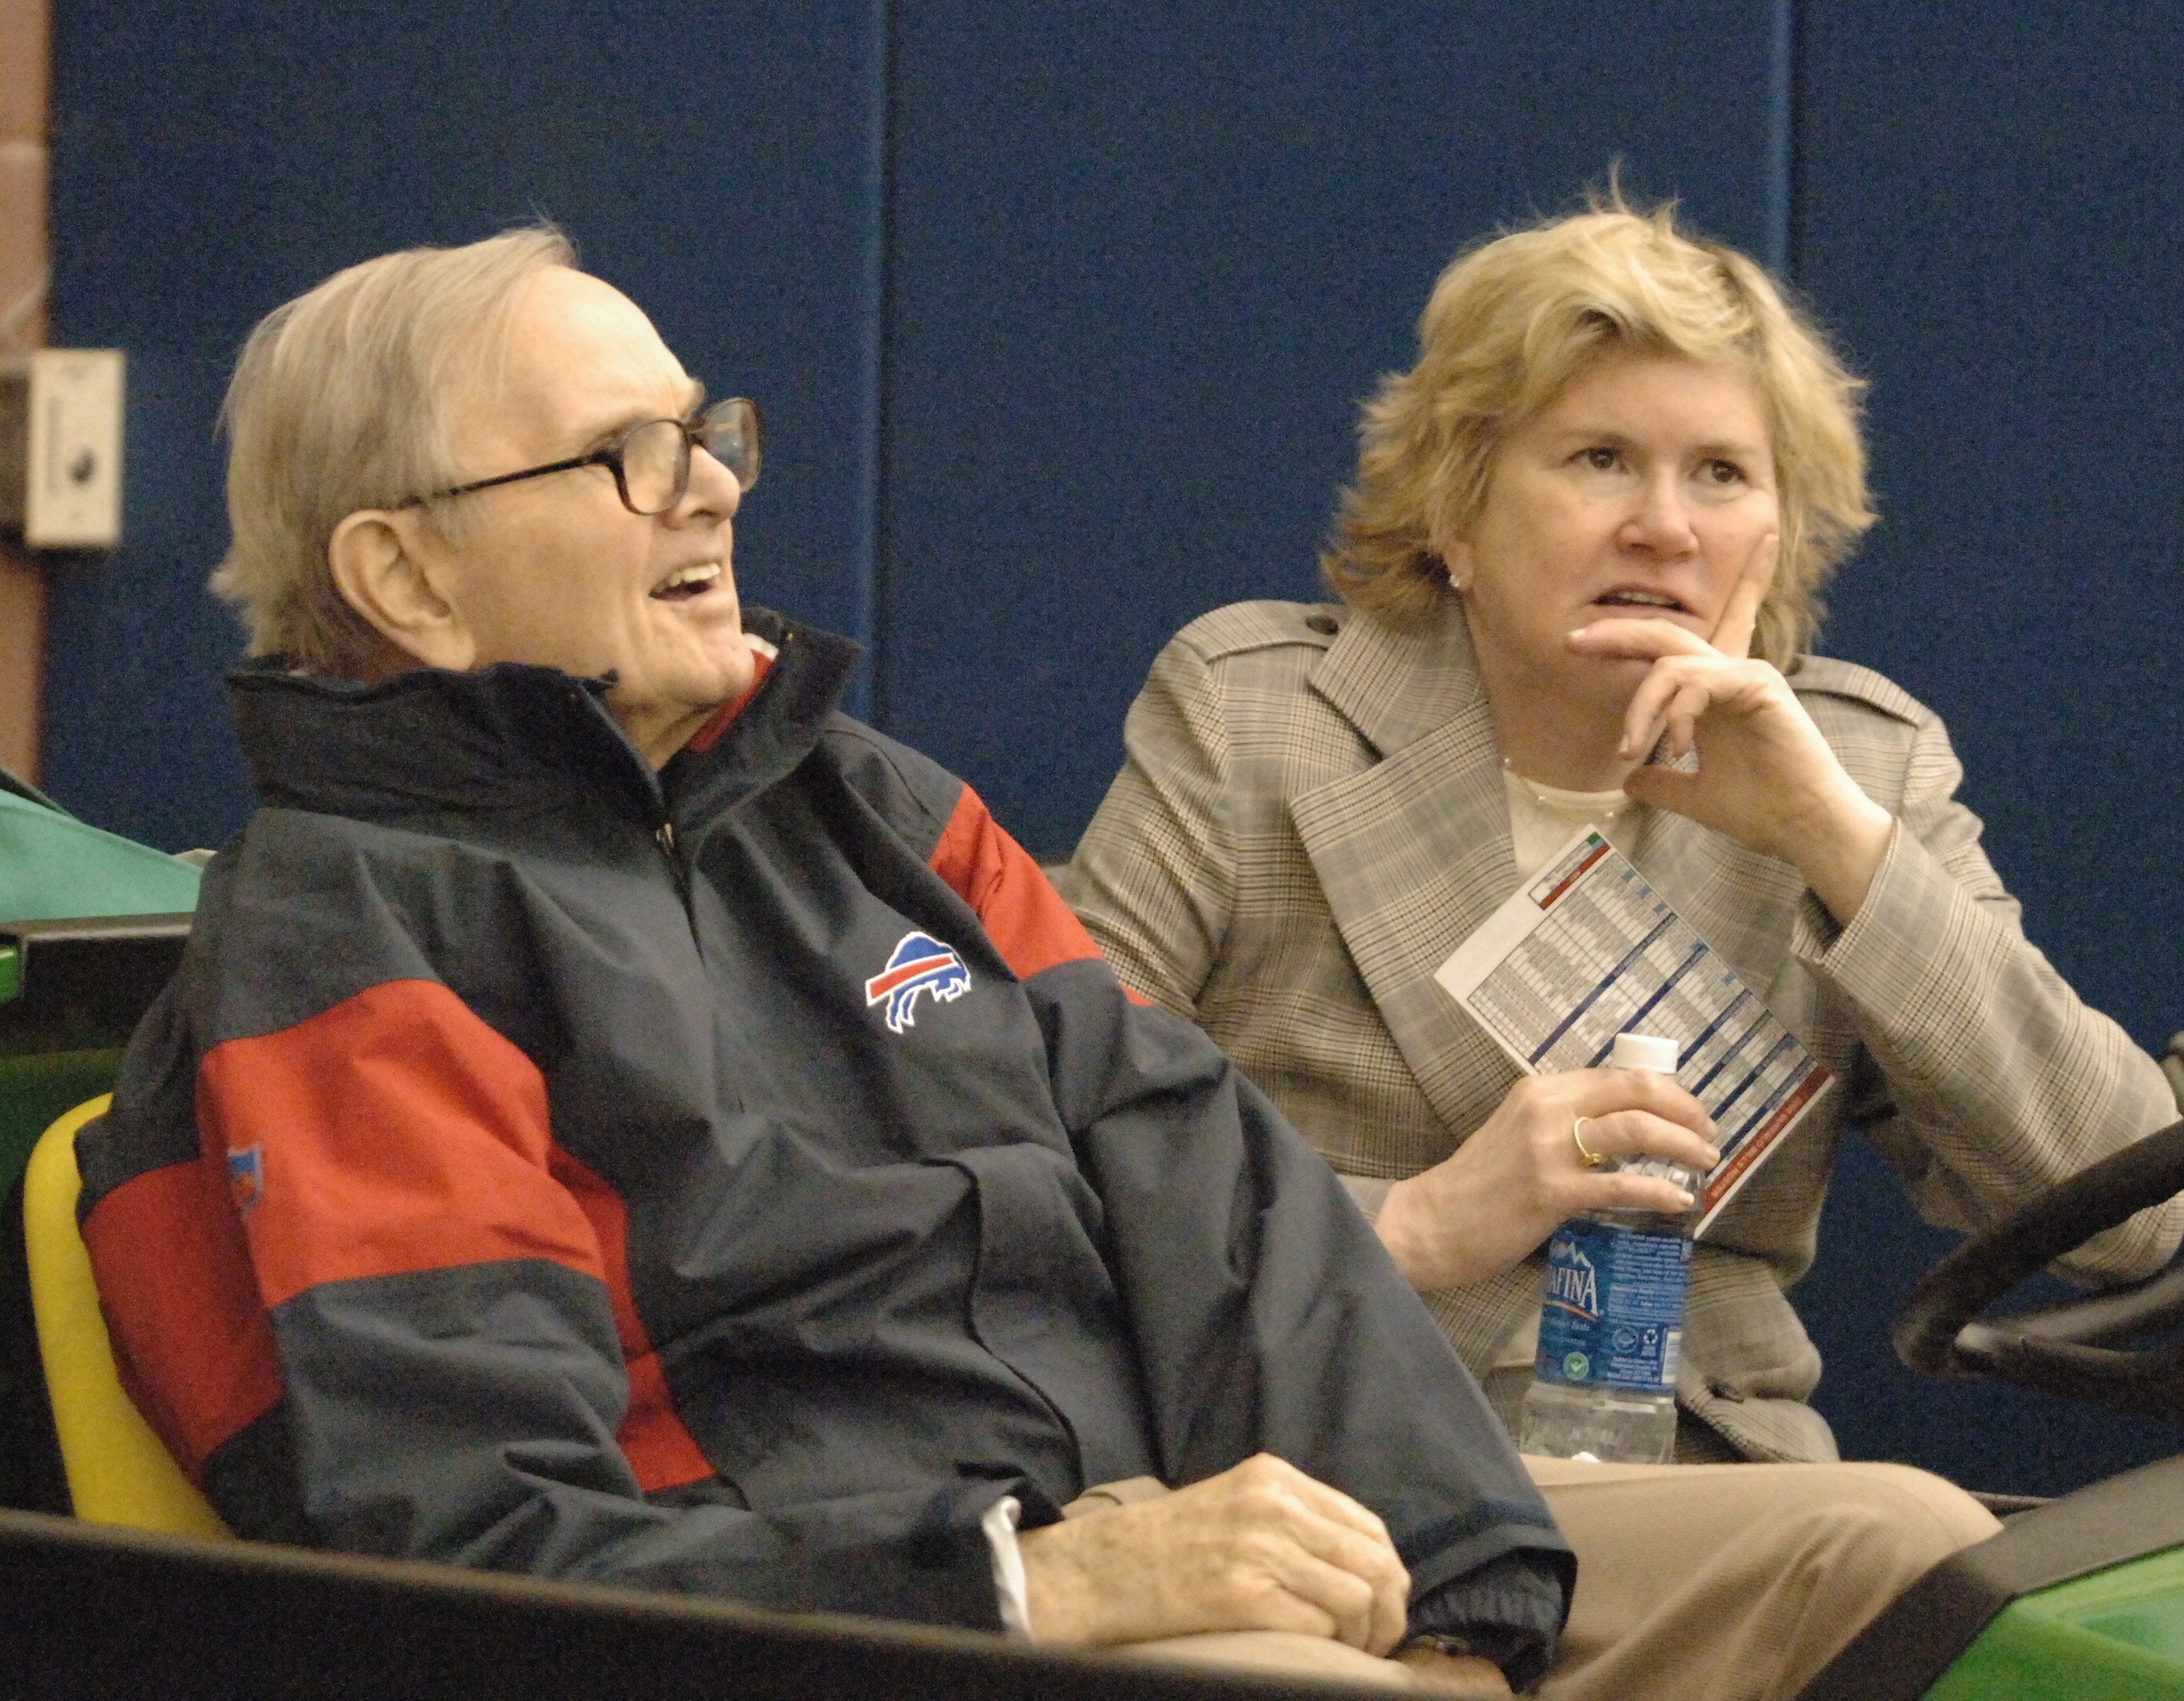 Linda Bogdan, sitting with her father, Ralph Wilson, in a 2005 photo, became a full-time scout for the Bills in the mid-'80s, but she didn't like to publicize her role as a gender pioneer in the NFL.